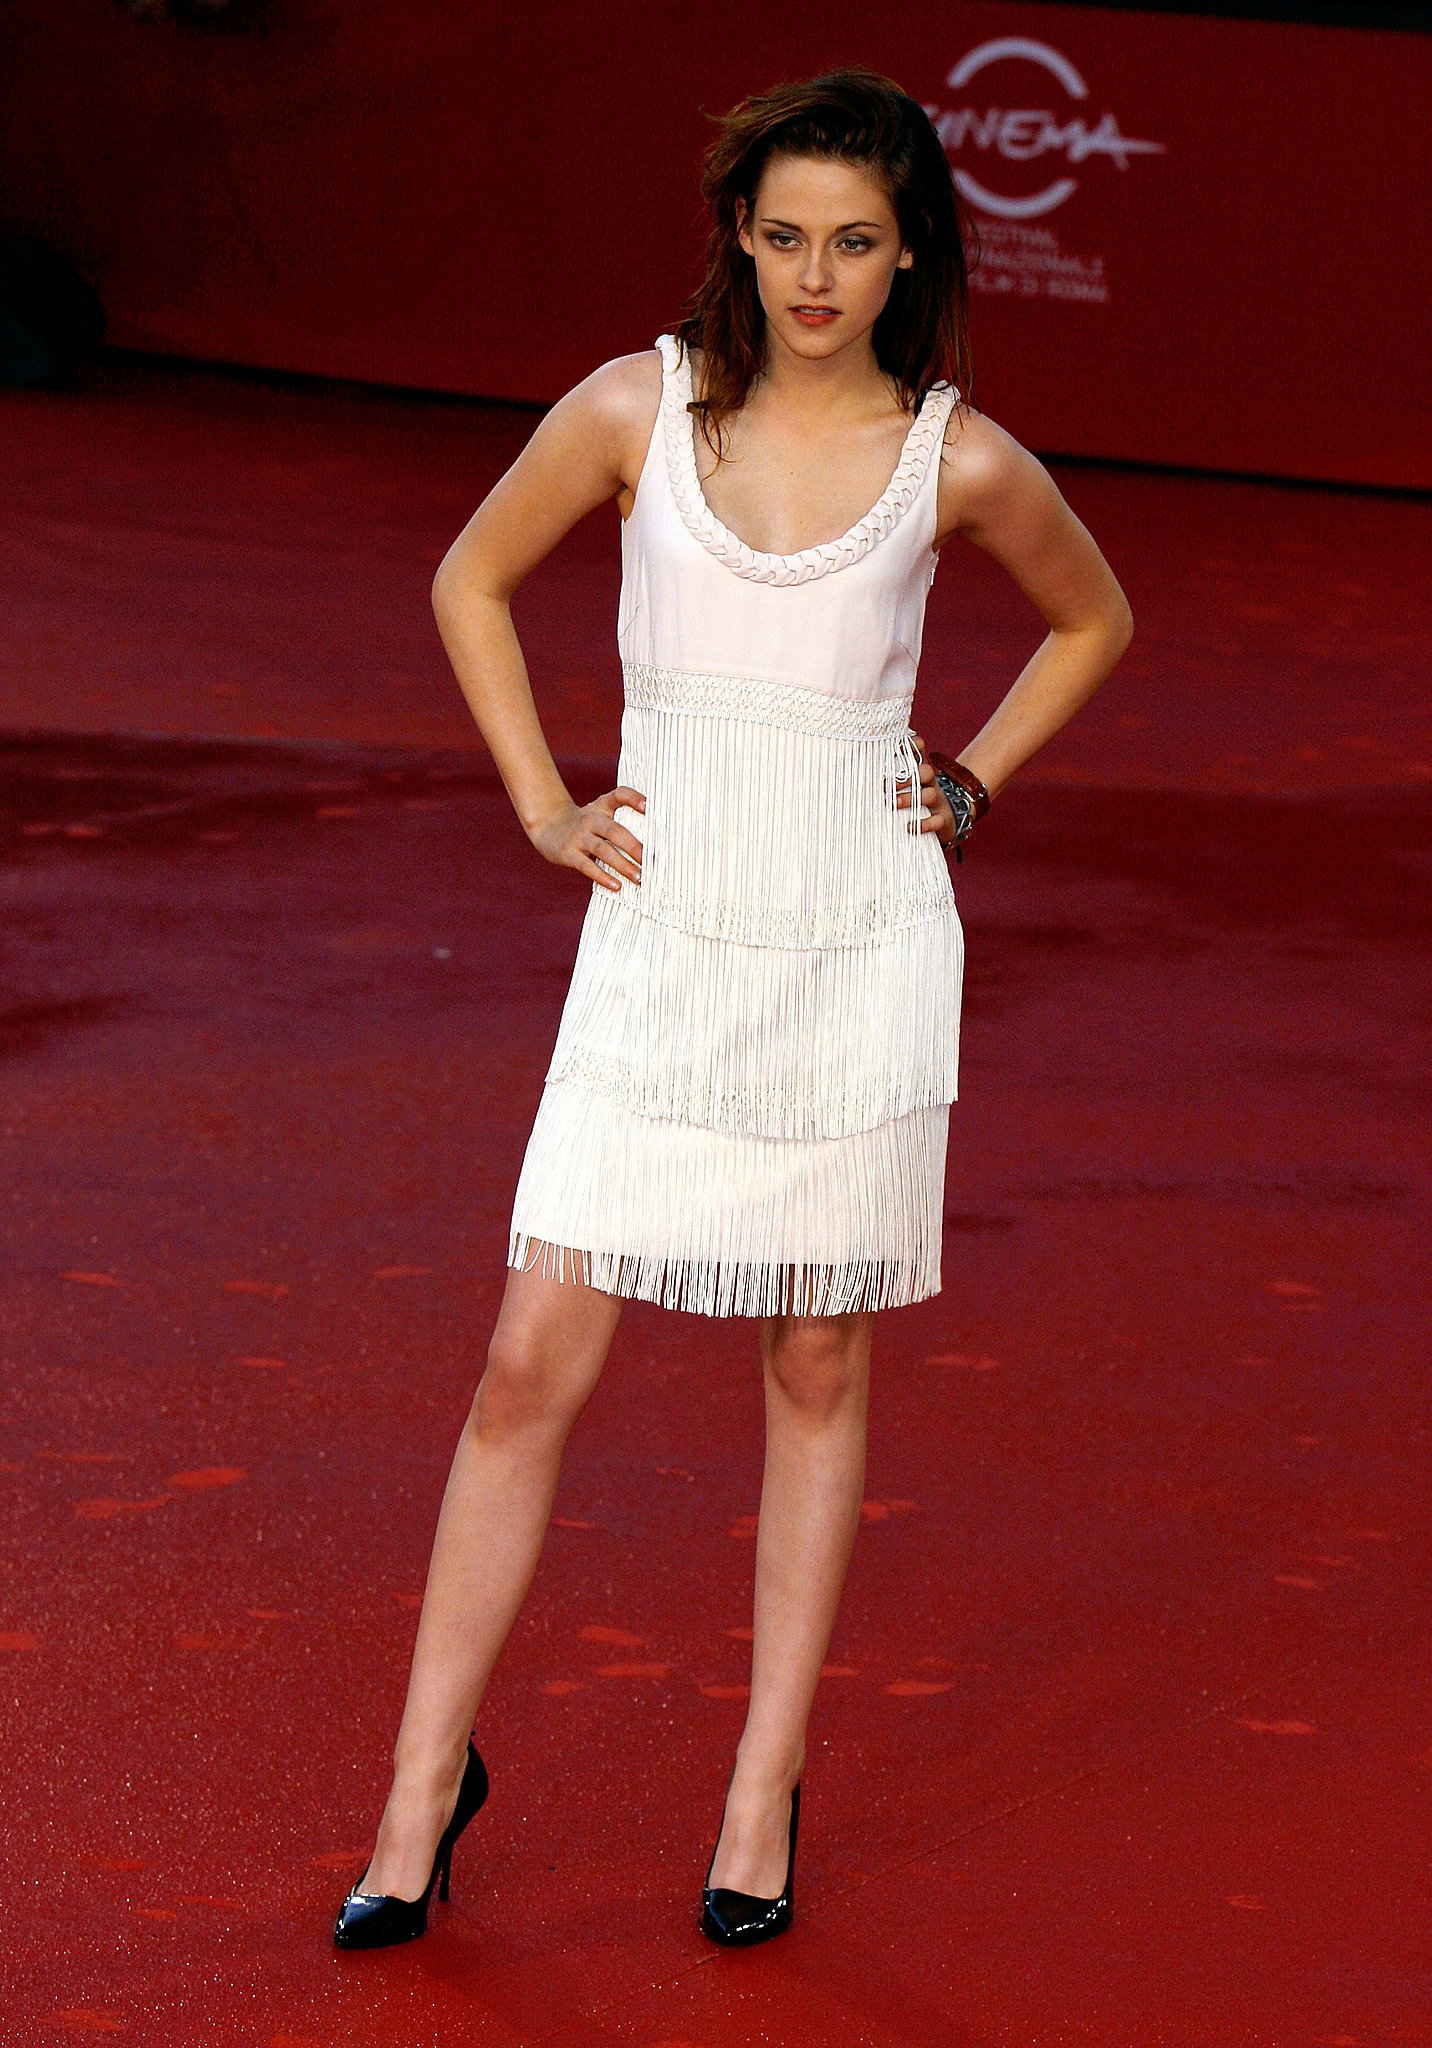 The star exuded a retro-chic vibe in a flirty fringed number for Twilight's Rome International Film Festival premiere in 2008.